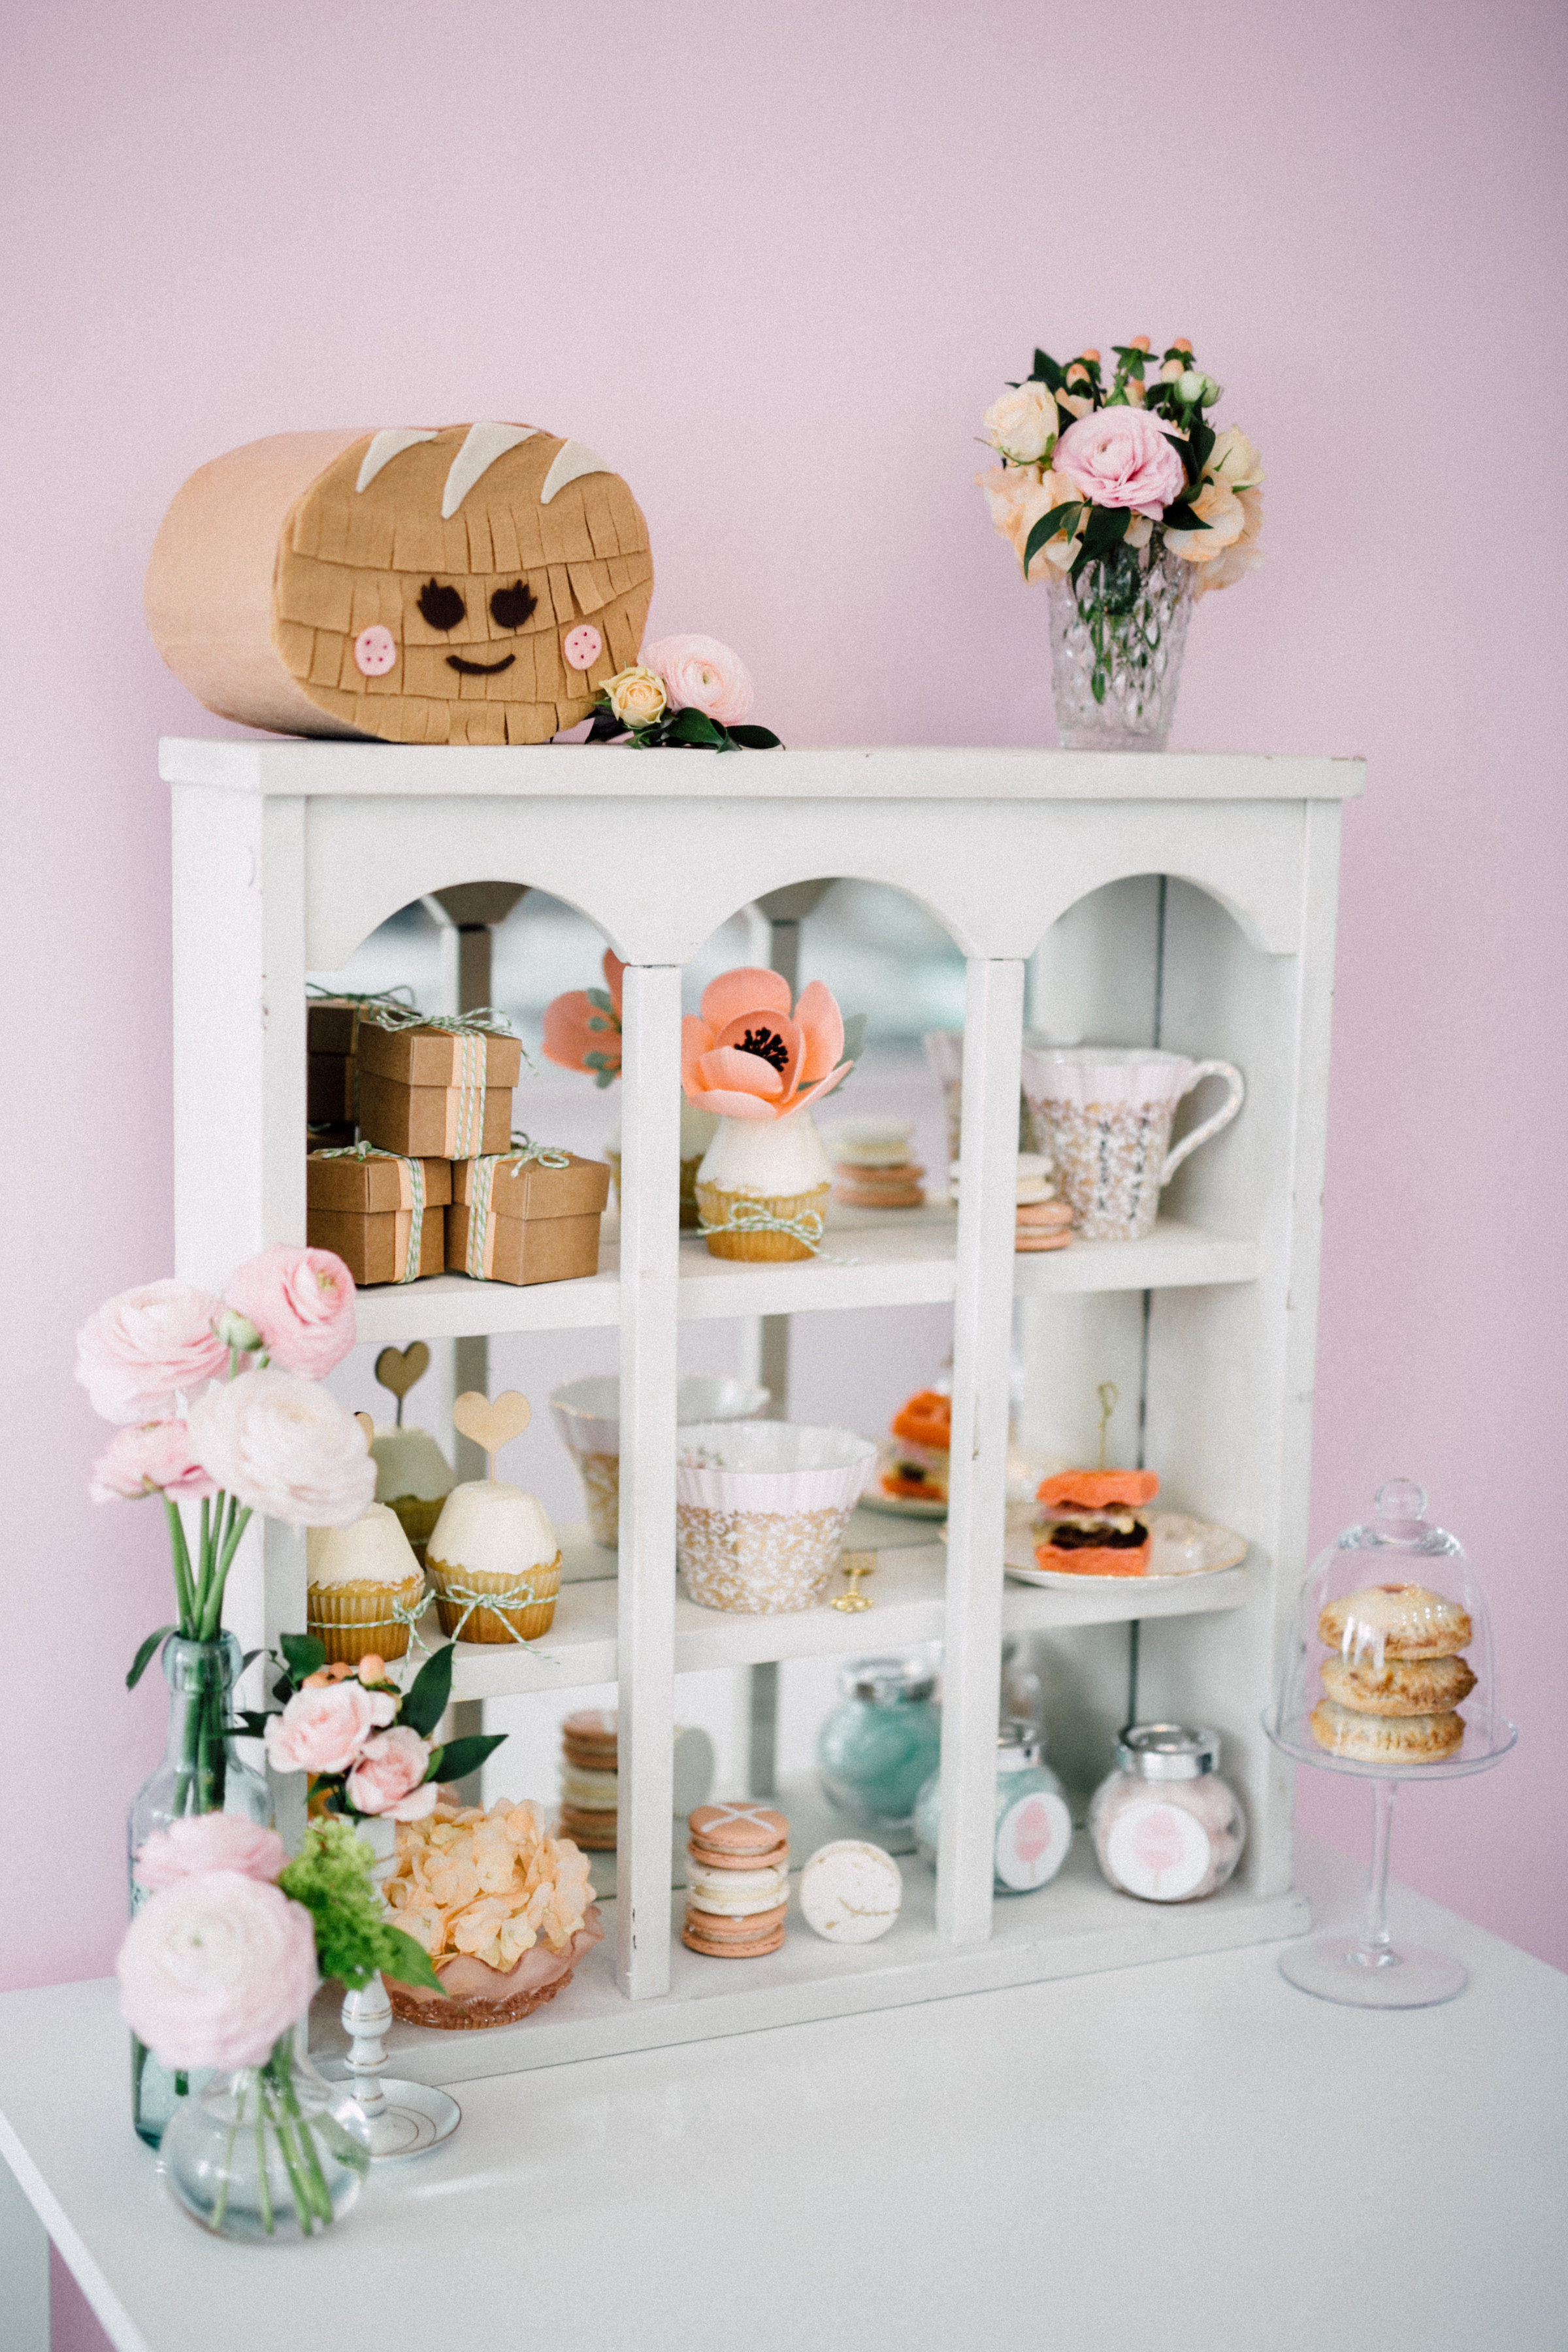 August In Bloom - Favour shelf - Bun In The Oven Baby Shower (Style Me Pretty & SMP Living)